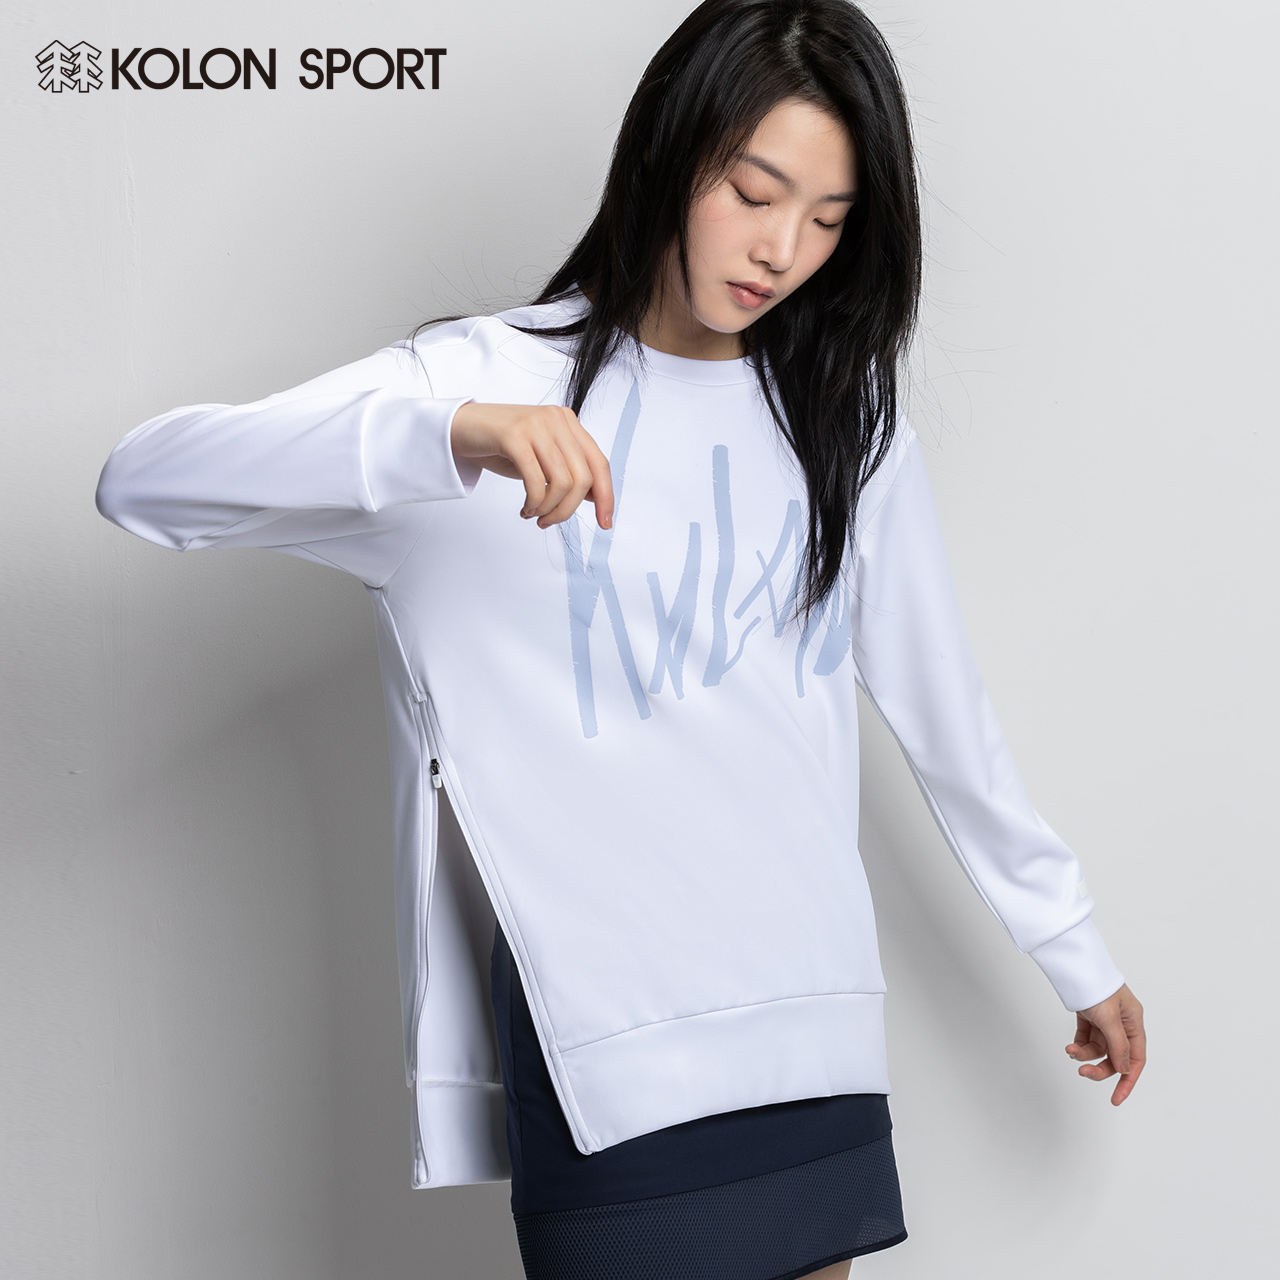 KOLONSPORT 隆 隆衣春 品 outdoor Korean casual round neck side zipper logo pullover